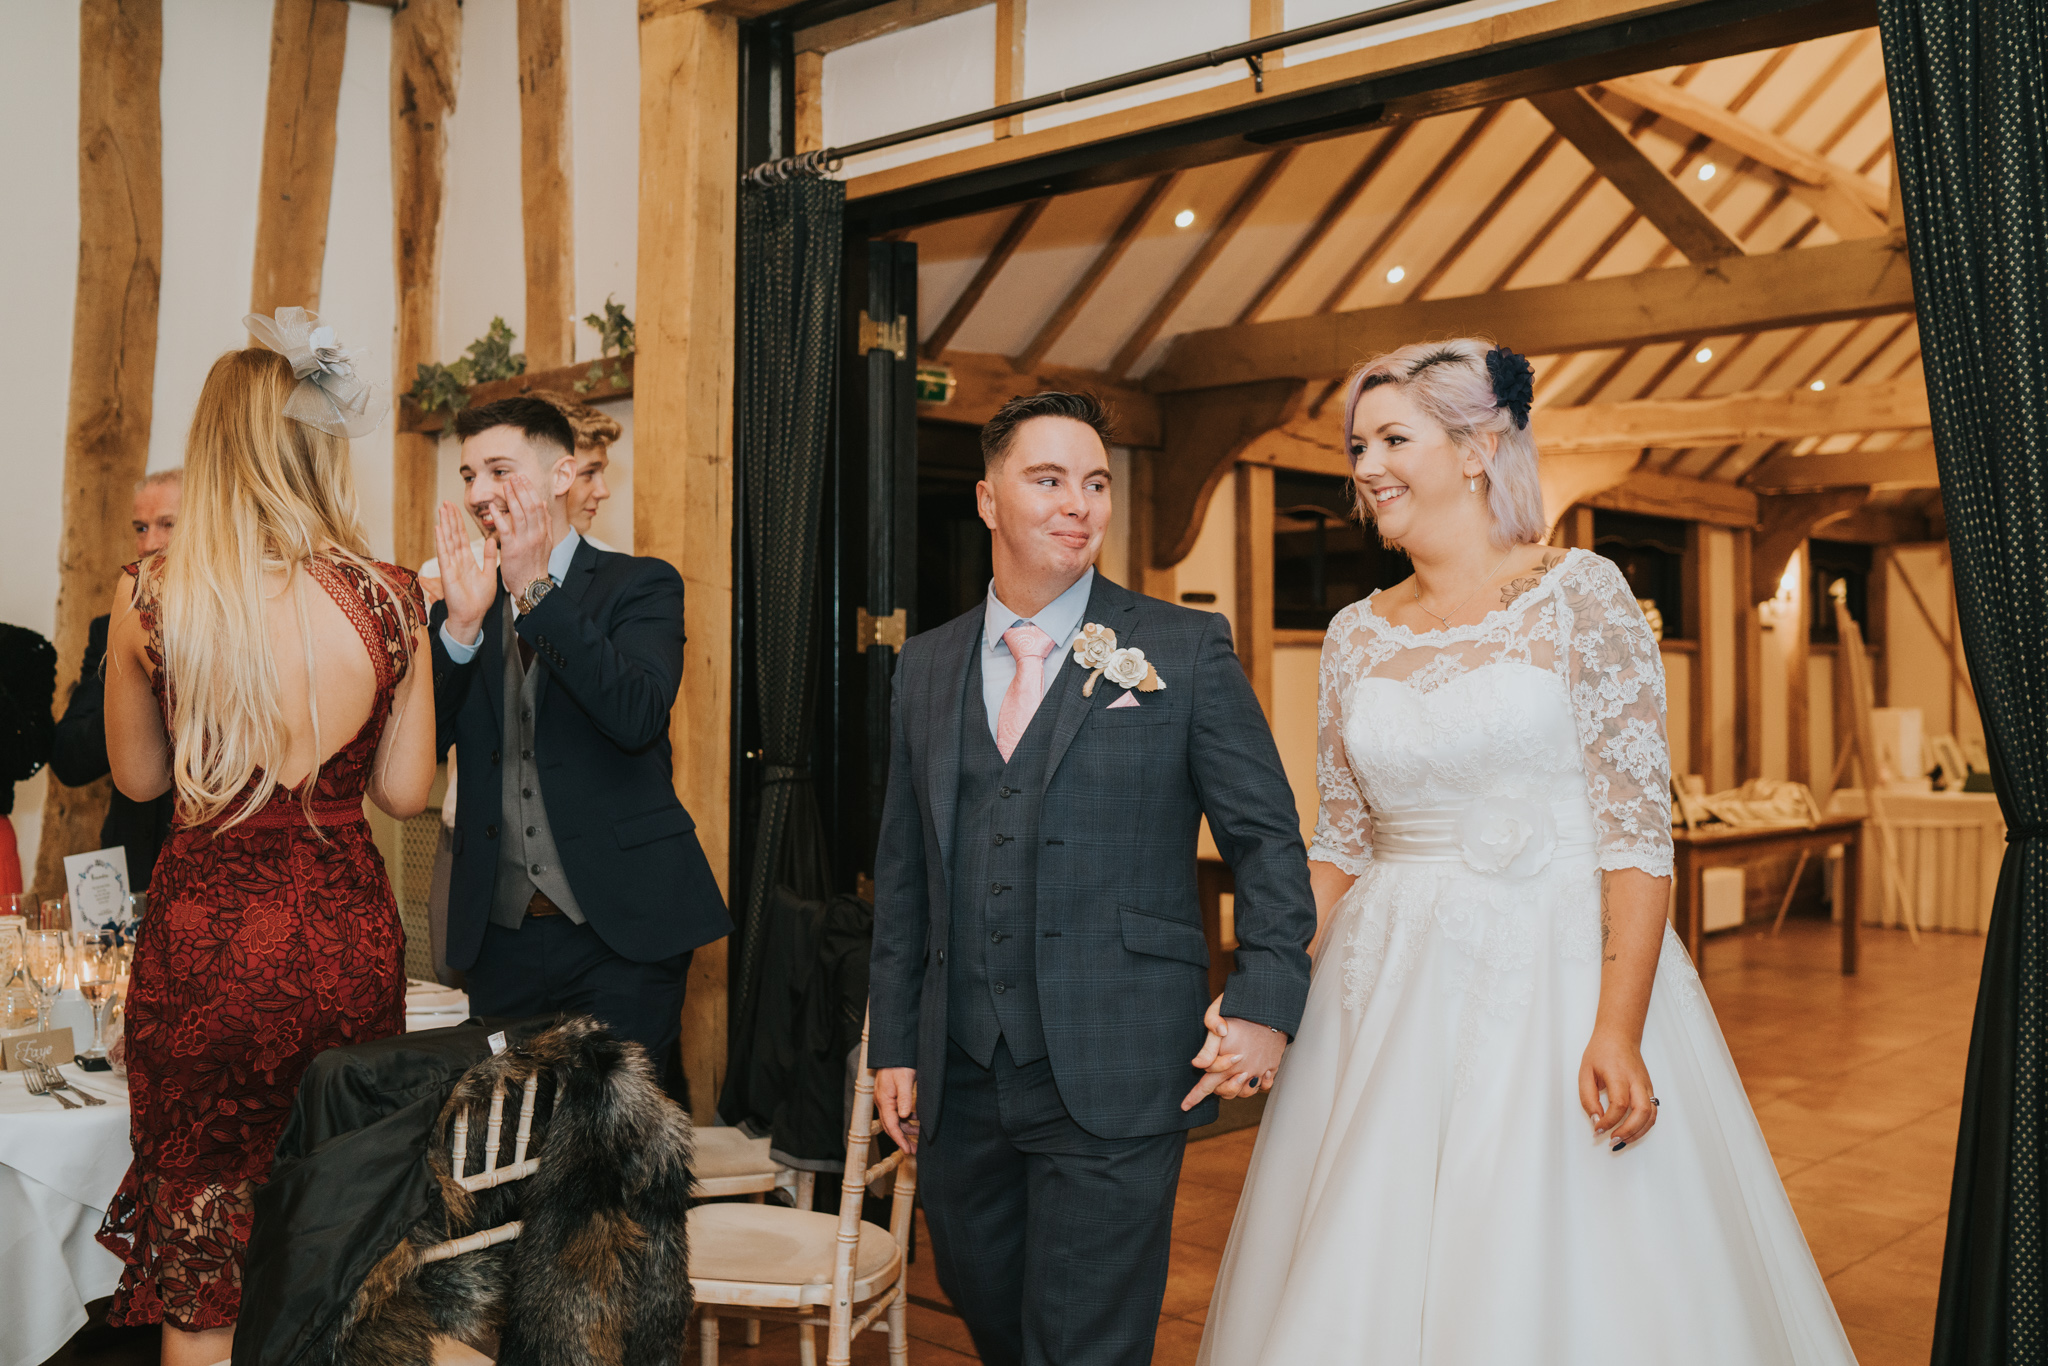 rhia-james-rustic-crabbs-barn-vintage-50s-retro-wedding-grace-elizabeth-colchester-essex-alternative-relaxed-wedding-family-photography-devon-suffolk-norfolk-essex (115 of 138).jpg